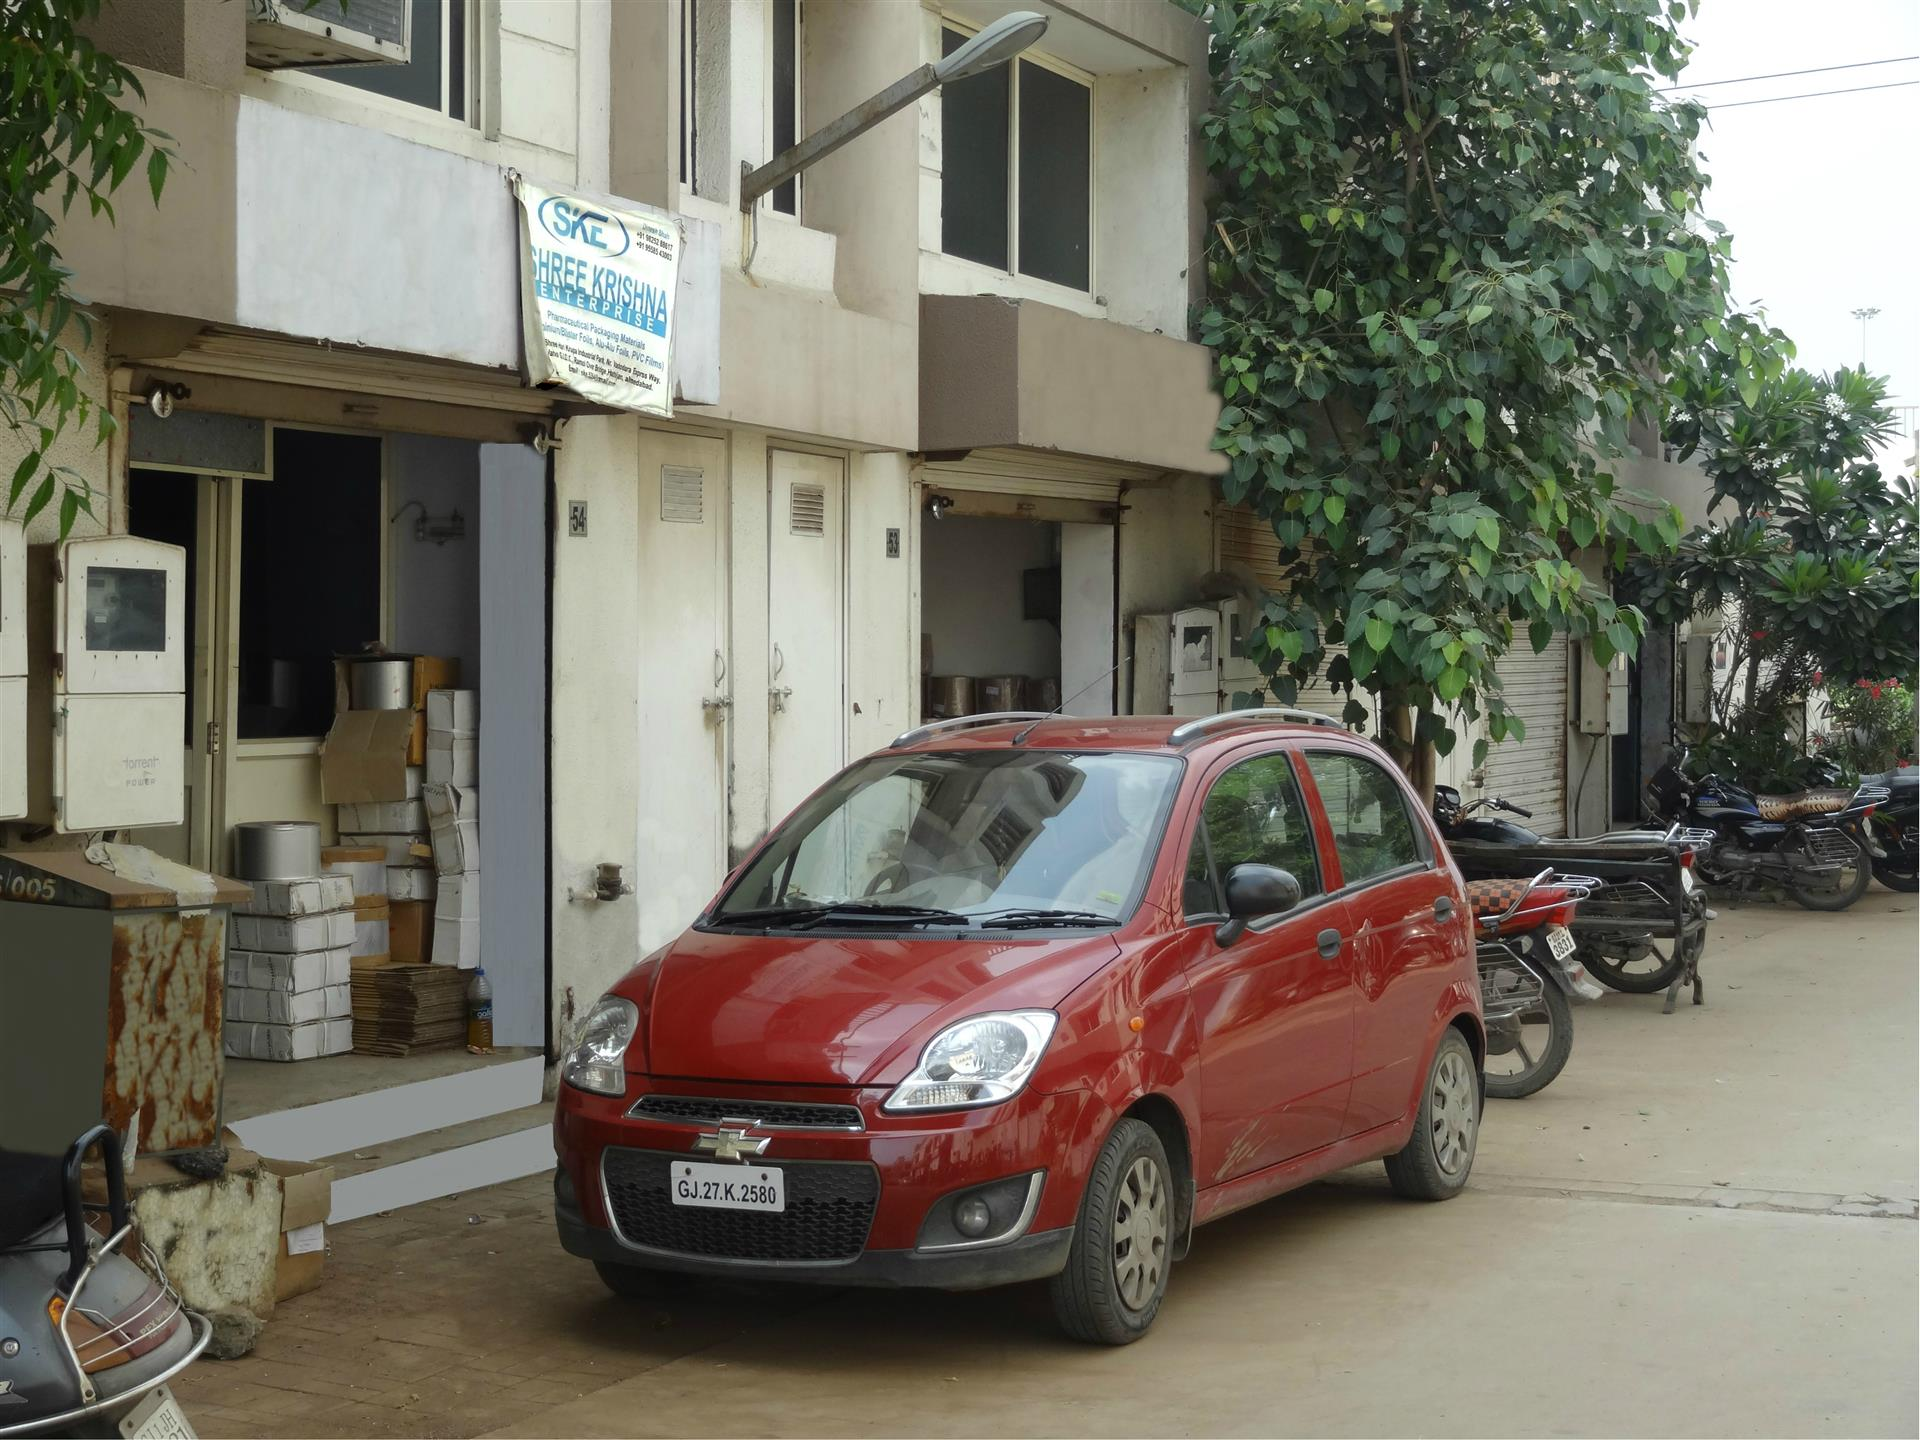 An image of the manufacturing shed of Shree Krishna Enterprise